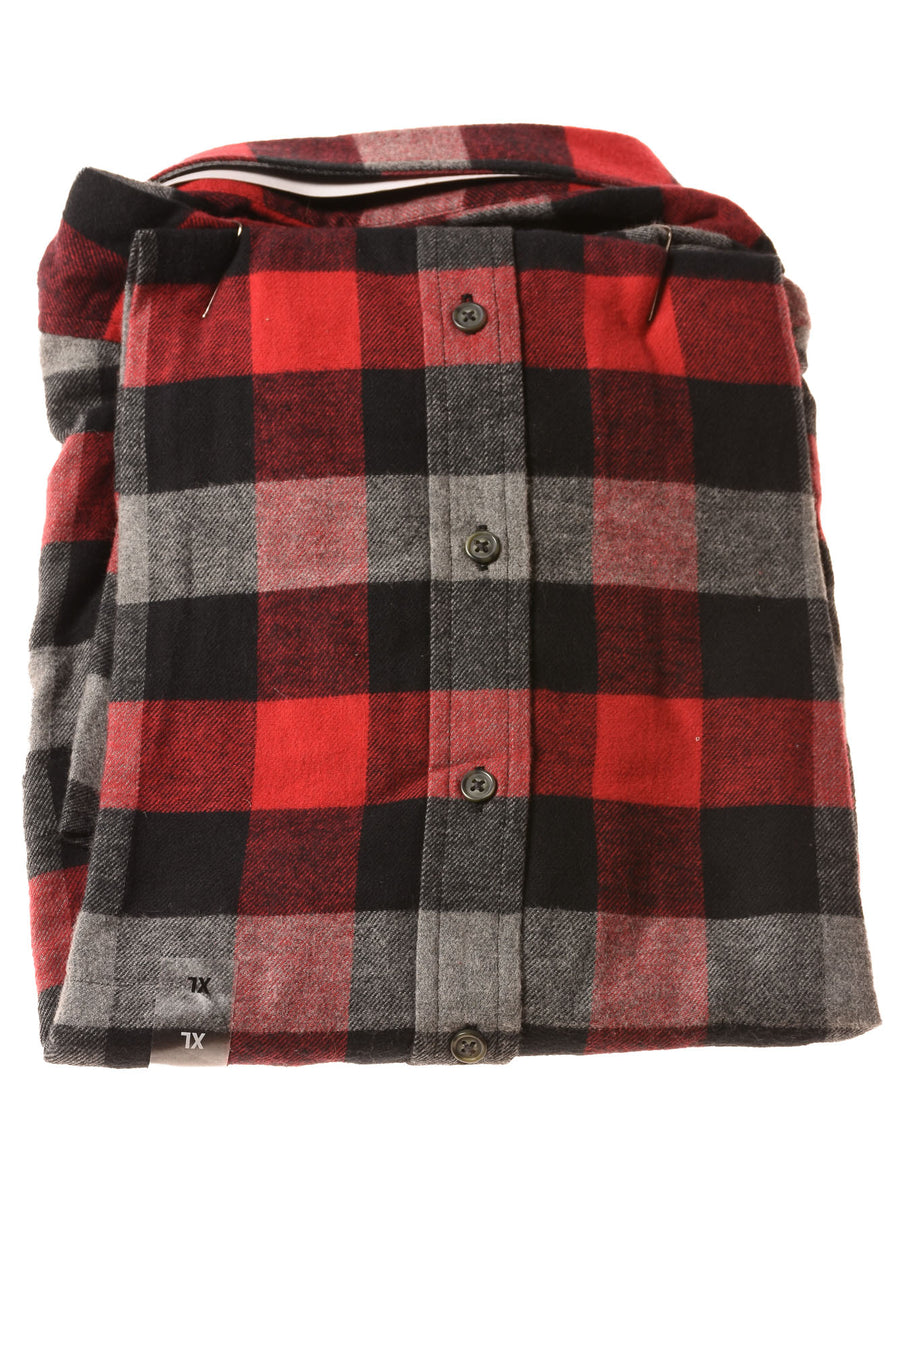 NEW Croft & Barrow Men's Shirt X-Large Red / Plaid